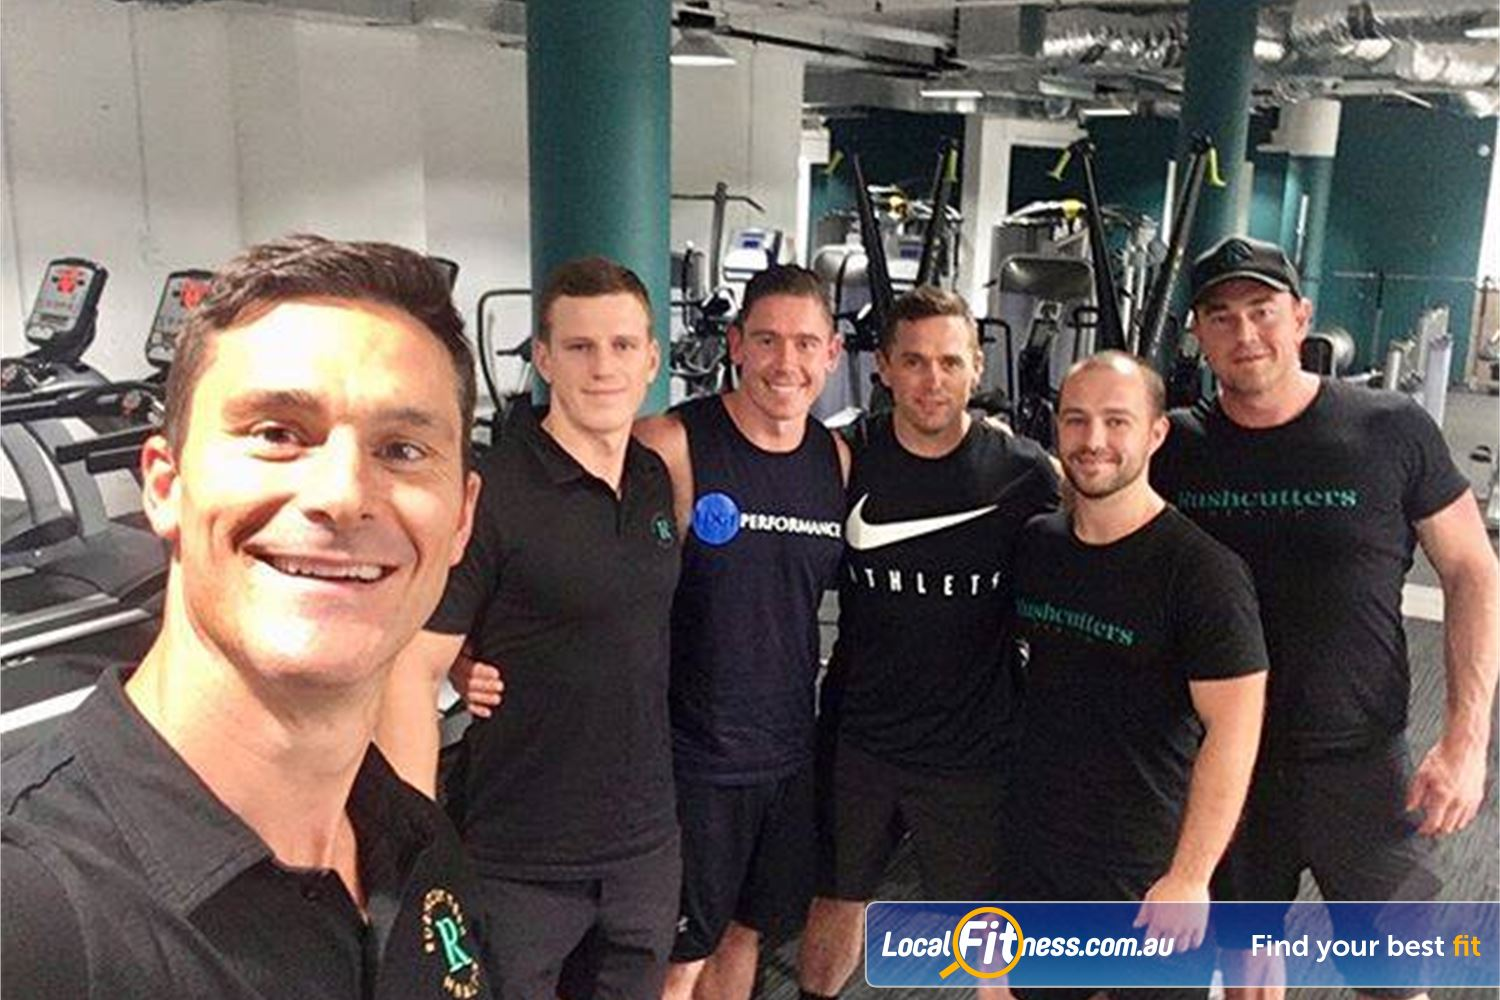 Rushcutters Health Near Double Bay 11 of the country's most experienced Personal Trainers are ready to help you.